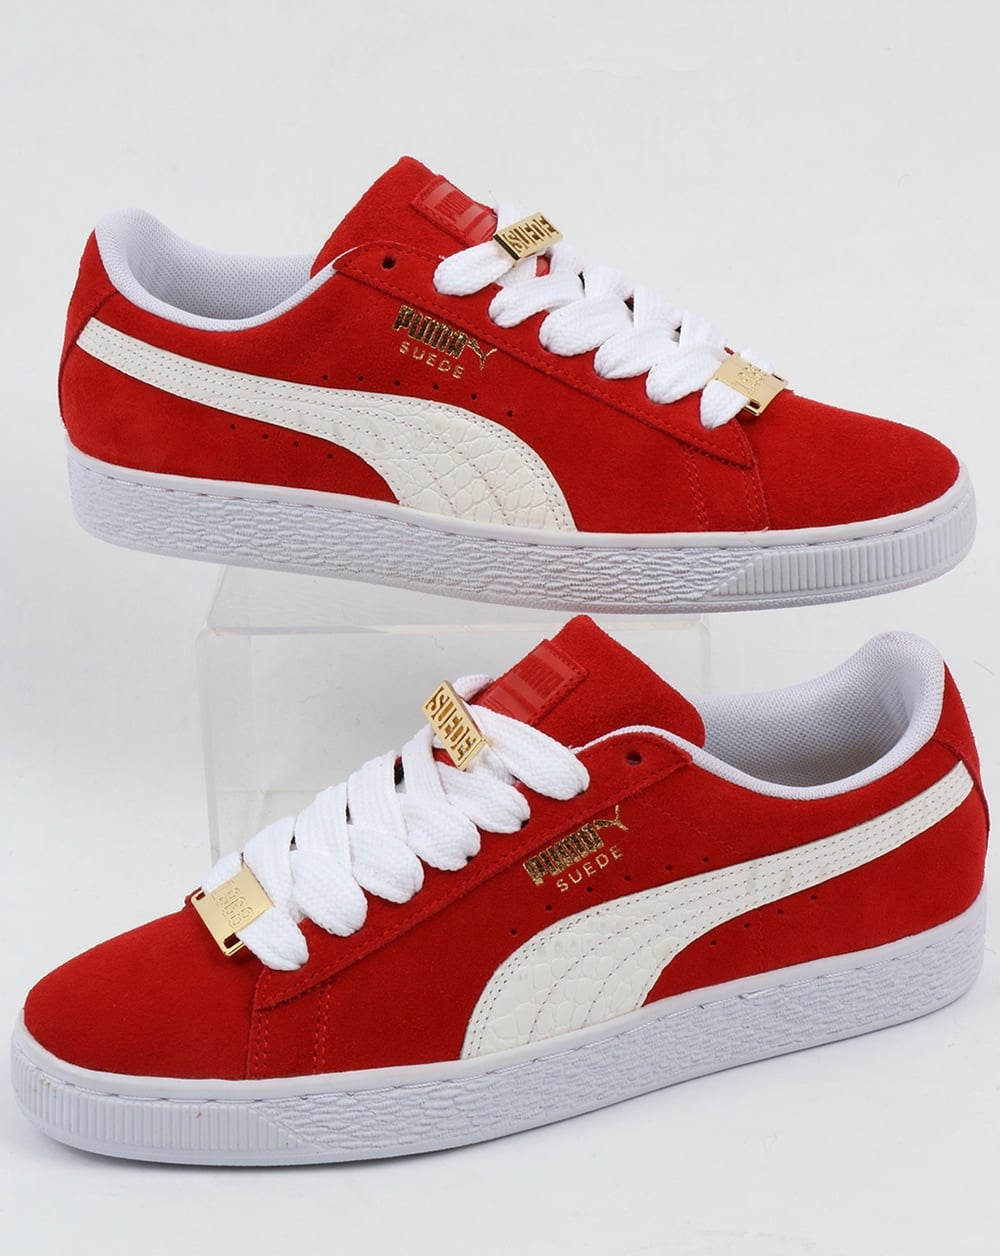 aa7e1f7ded Puma Suede Classic Bboy Fabulous Trainers Red/white